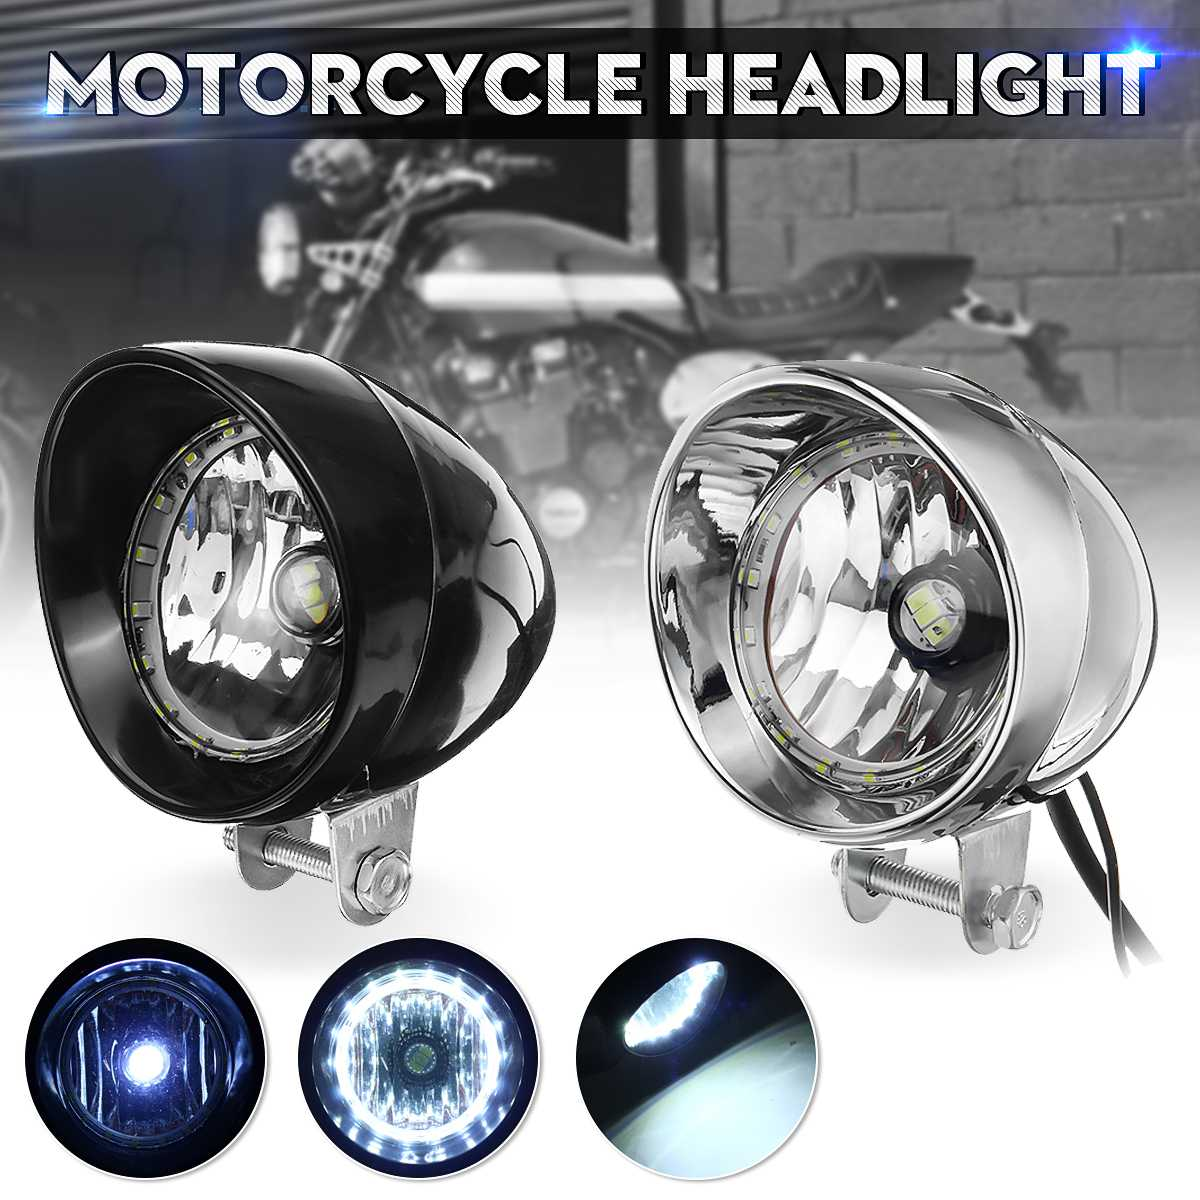 Black Chrome LED Motorcycle Universal Bullet Headlights High/Low Beam Head Light Lamp